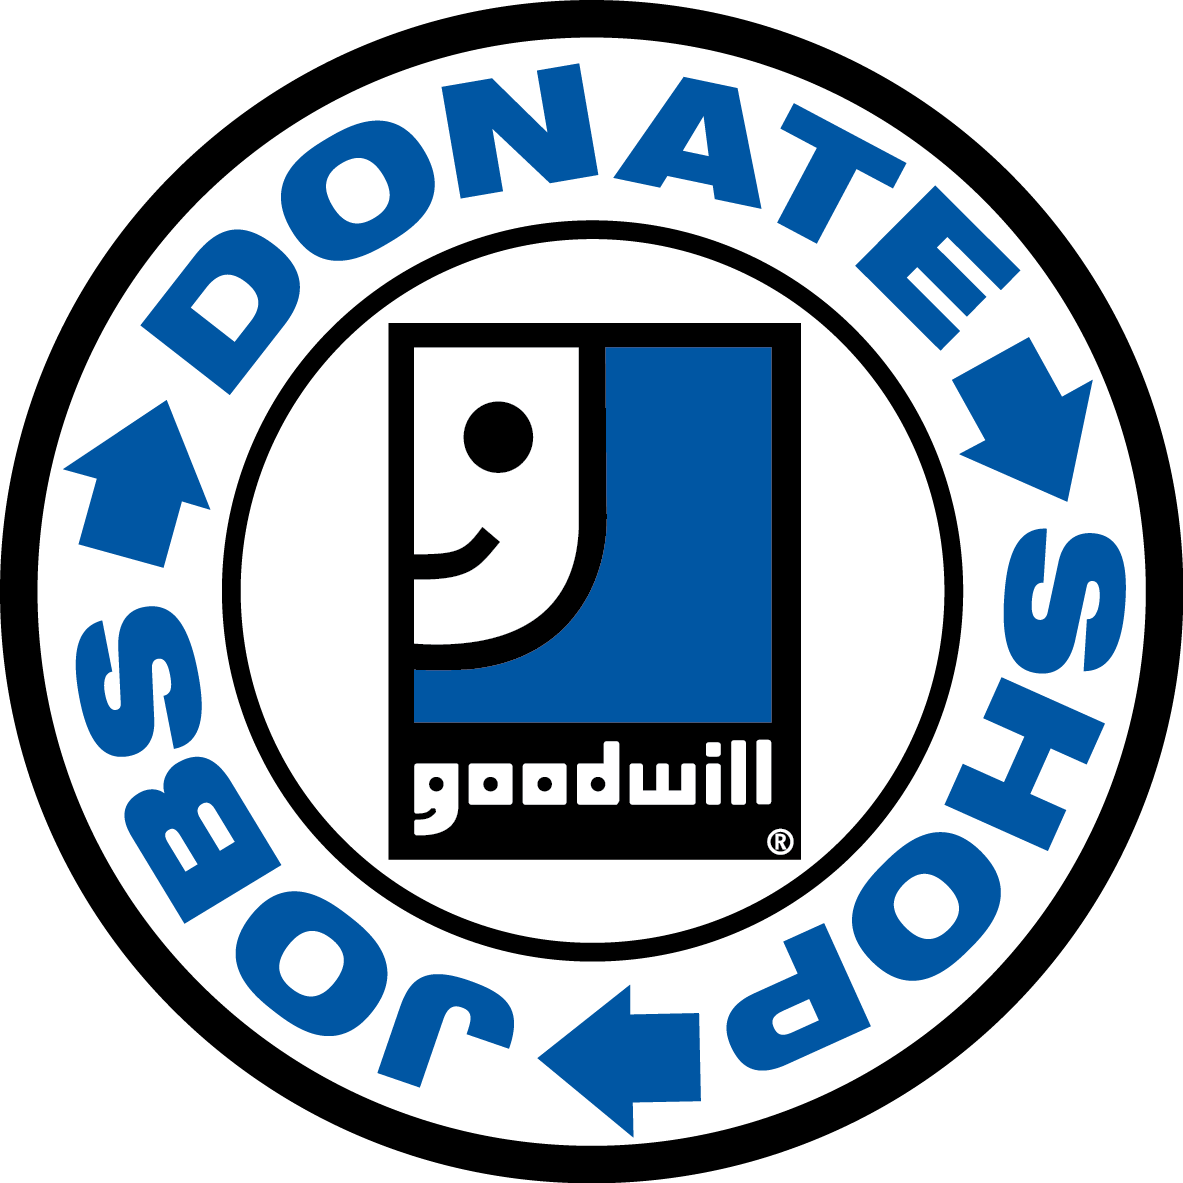 goodwilldonate